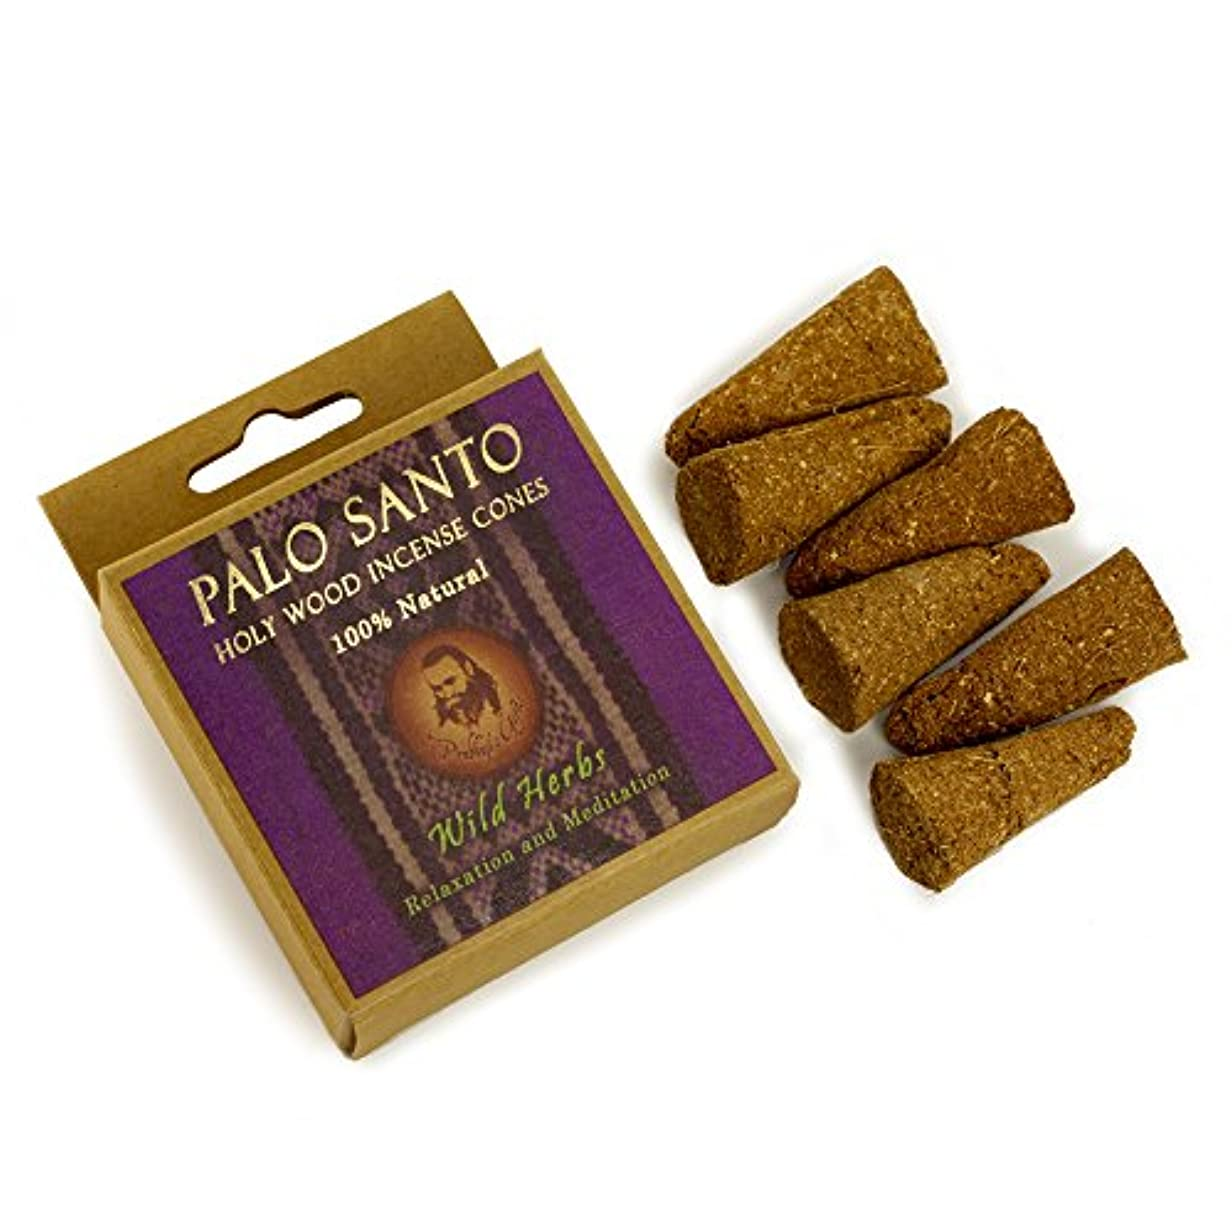 住居廃棄従順なPalo Santo and Wild herbs – Relaxation &瞑想 – 6 Incense Cones